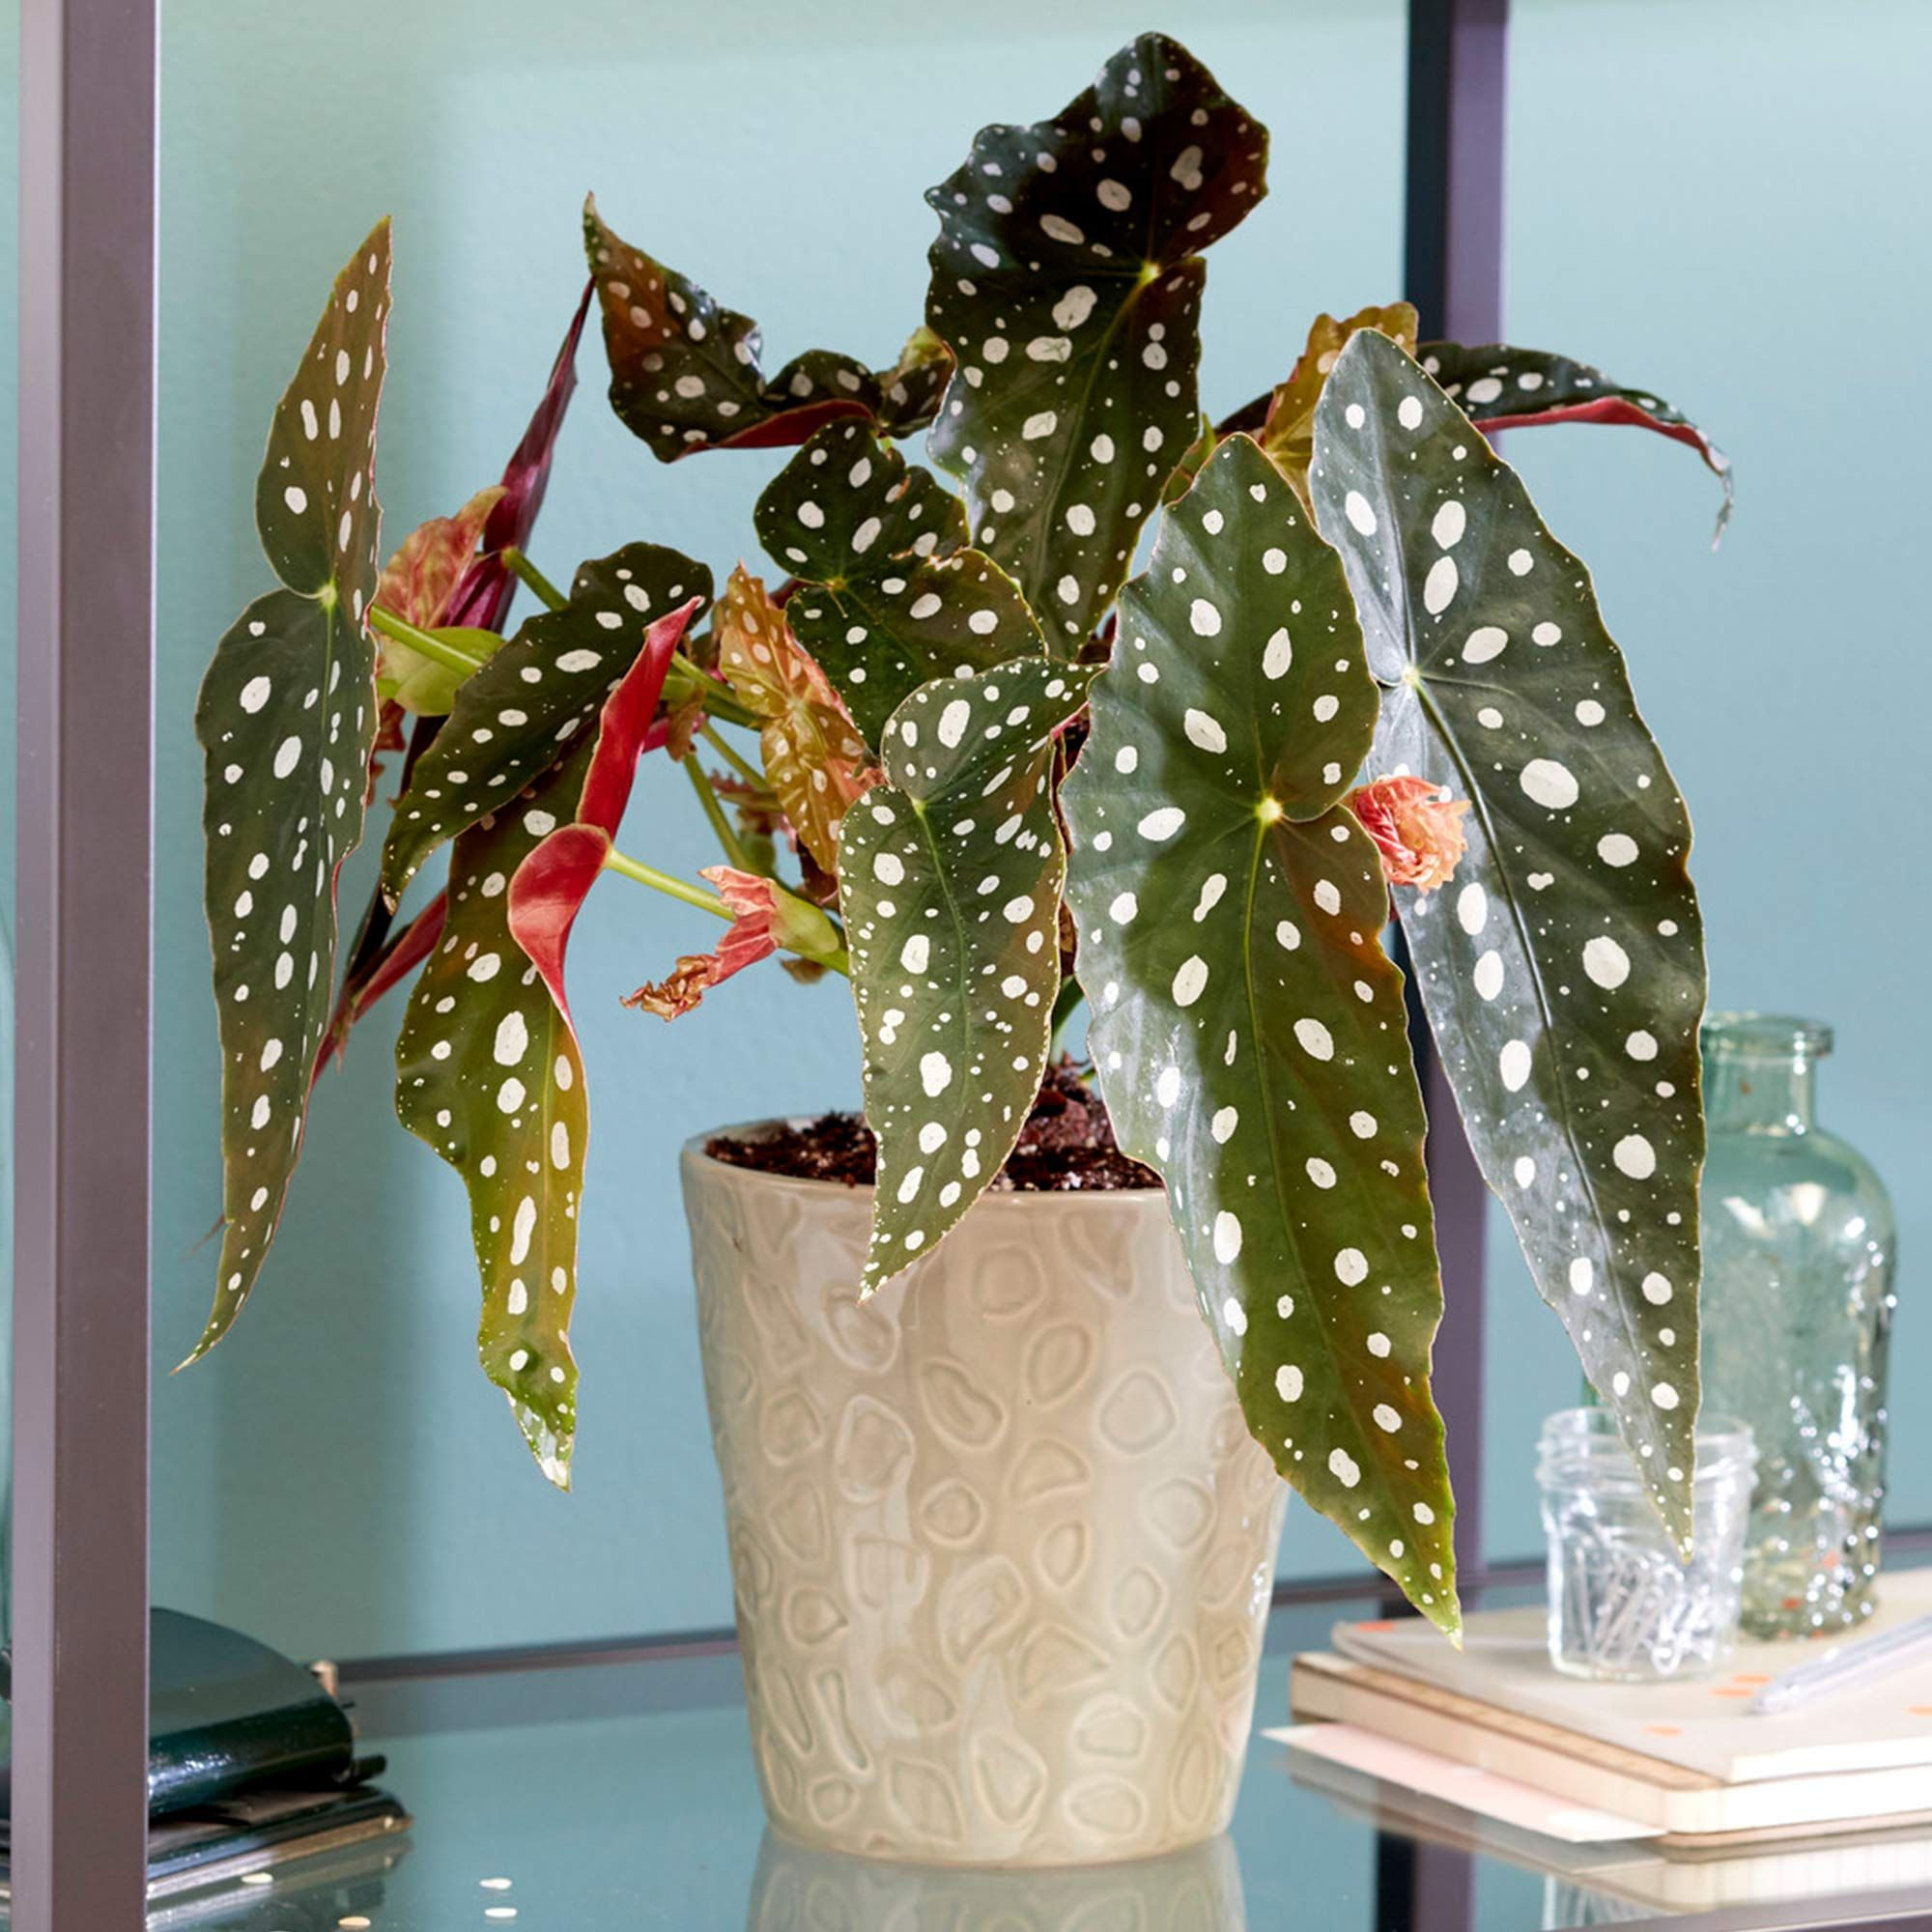 Spotted Begonia Maculata Popular Indoor Houseplant 20 30cm With Pot Amazon Co Uk Garden Outdoors In 2020 Begonia Maculata House Plants Begonia